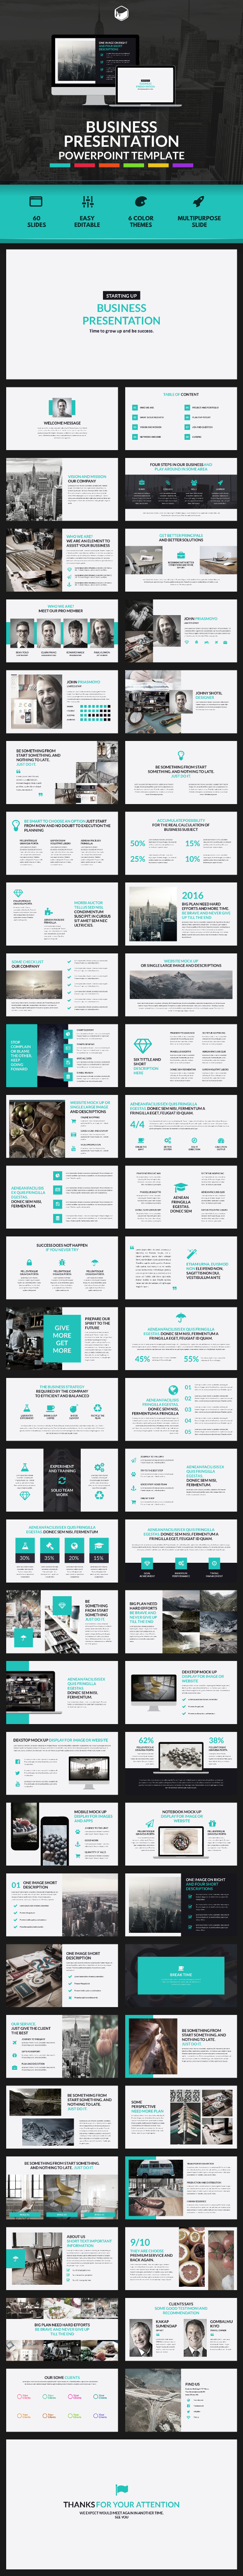 Business presentation powerpoint template by descarteshouston business presentation powerpoint template business powerpoint templates alramifo Choice Image